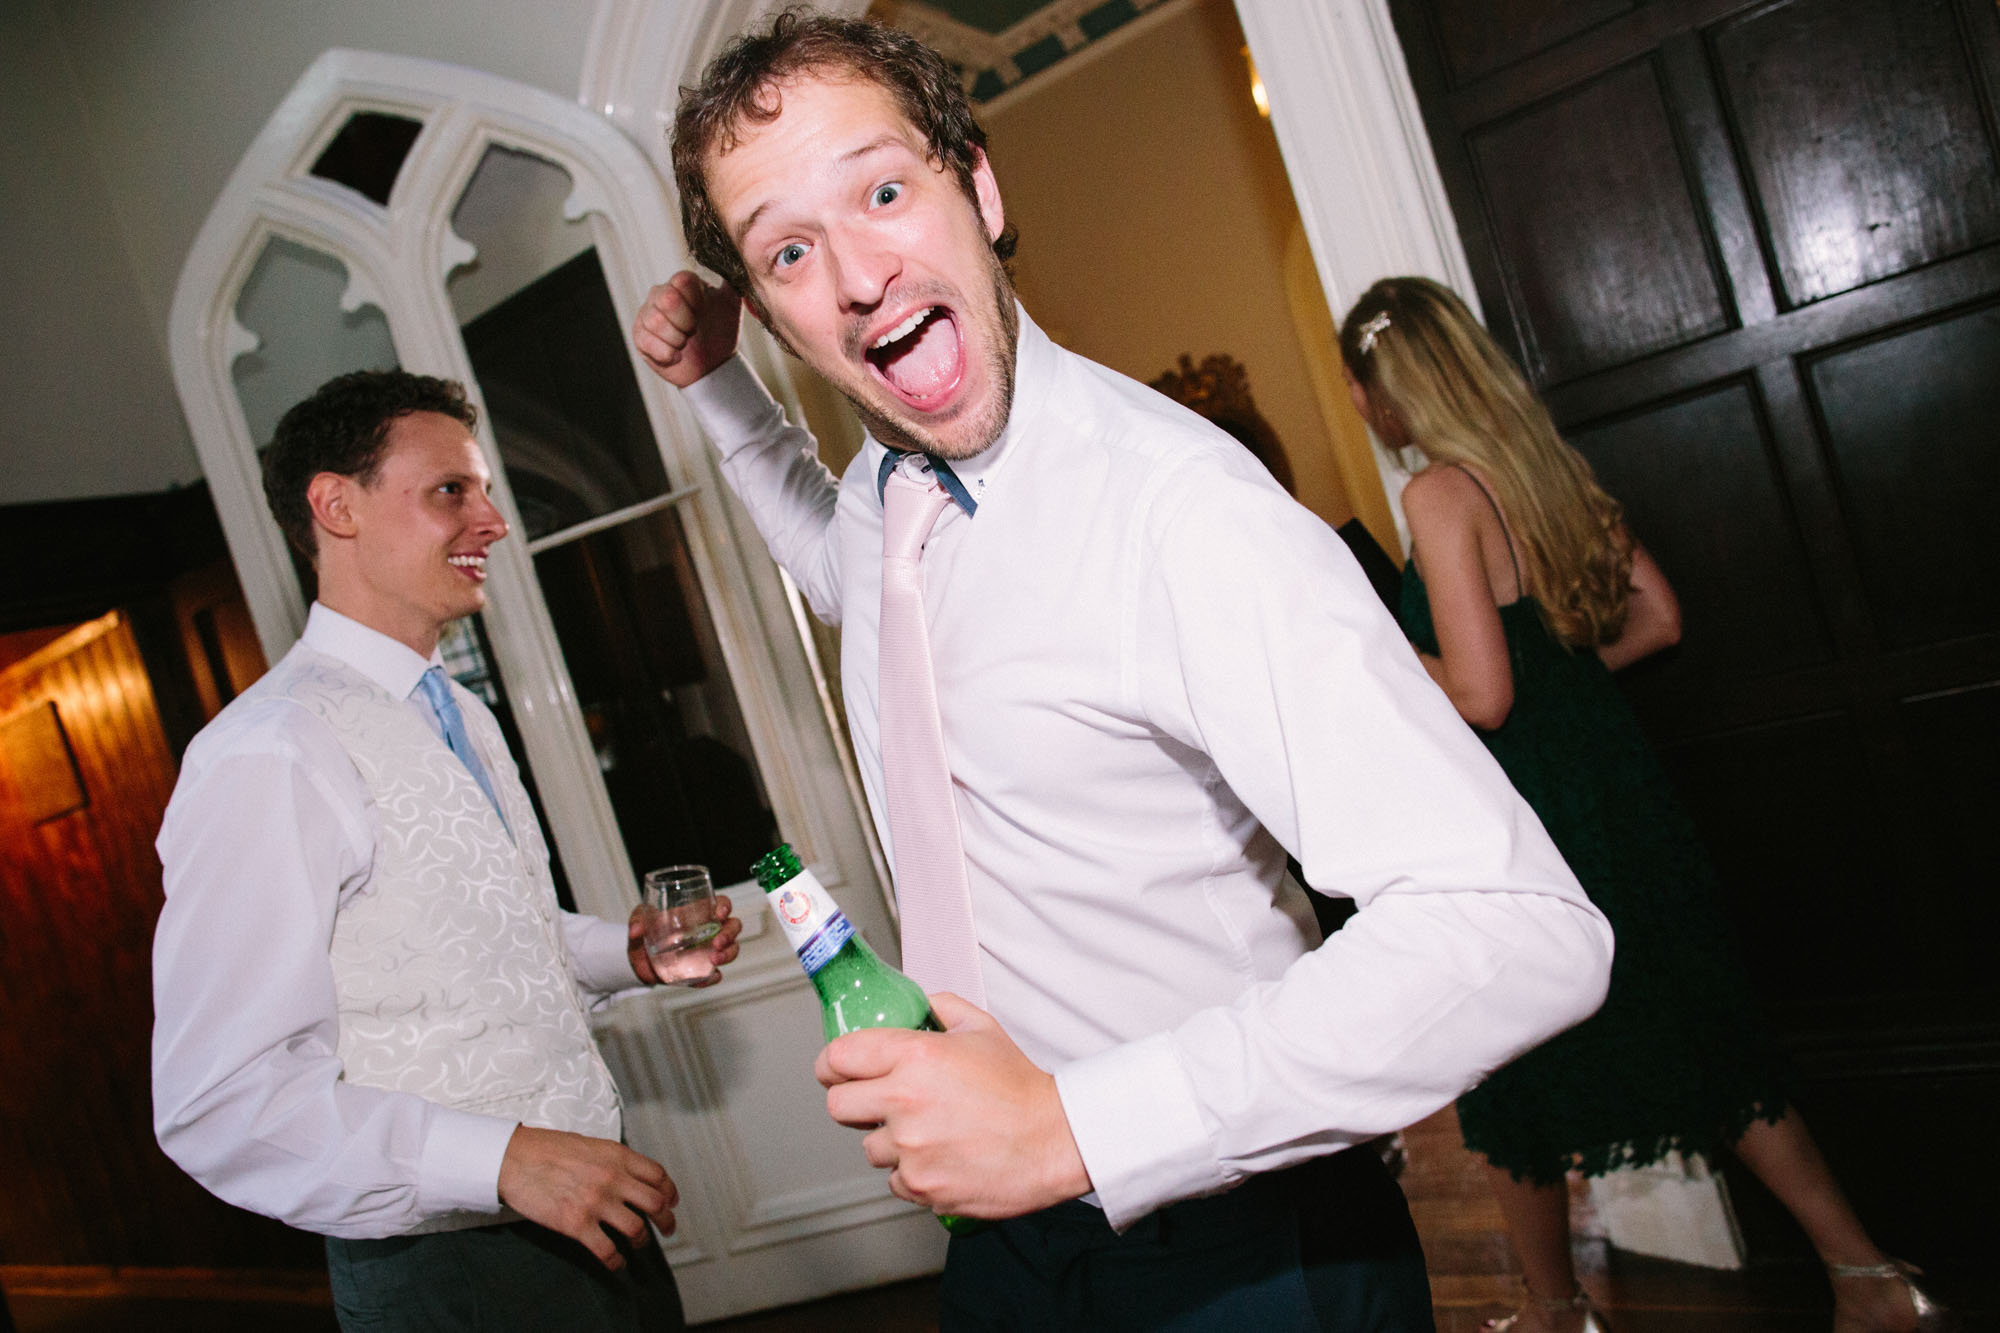 Guests making funny face on the dance floor at Chiddingstone Castle